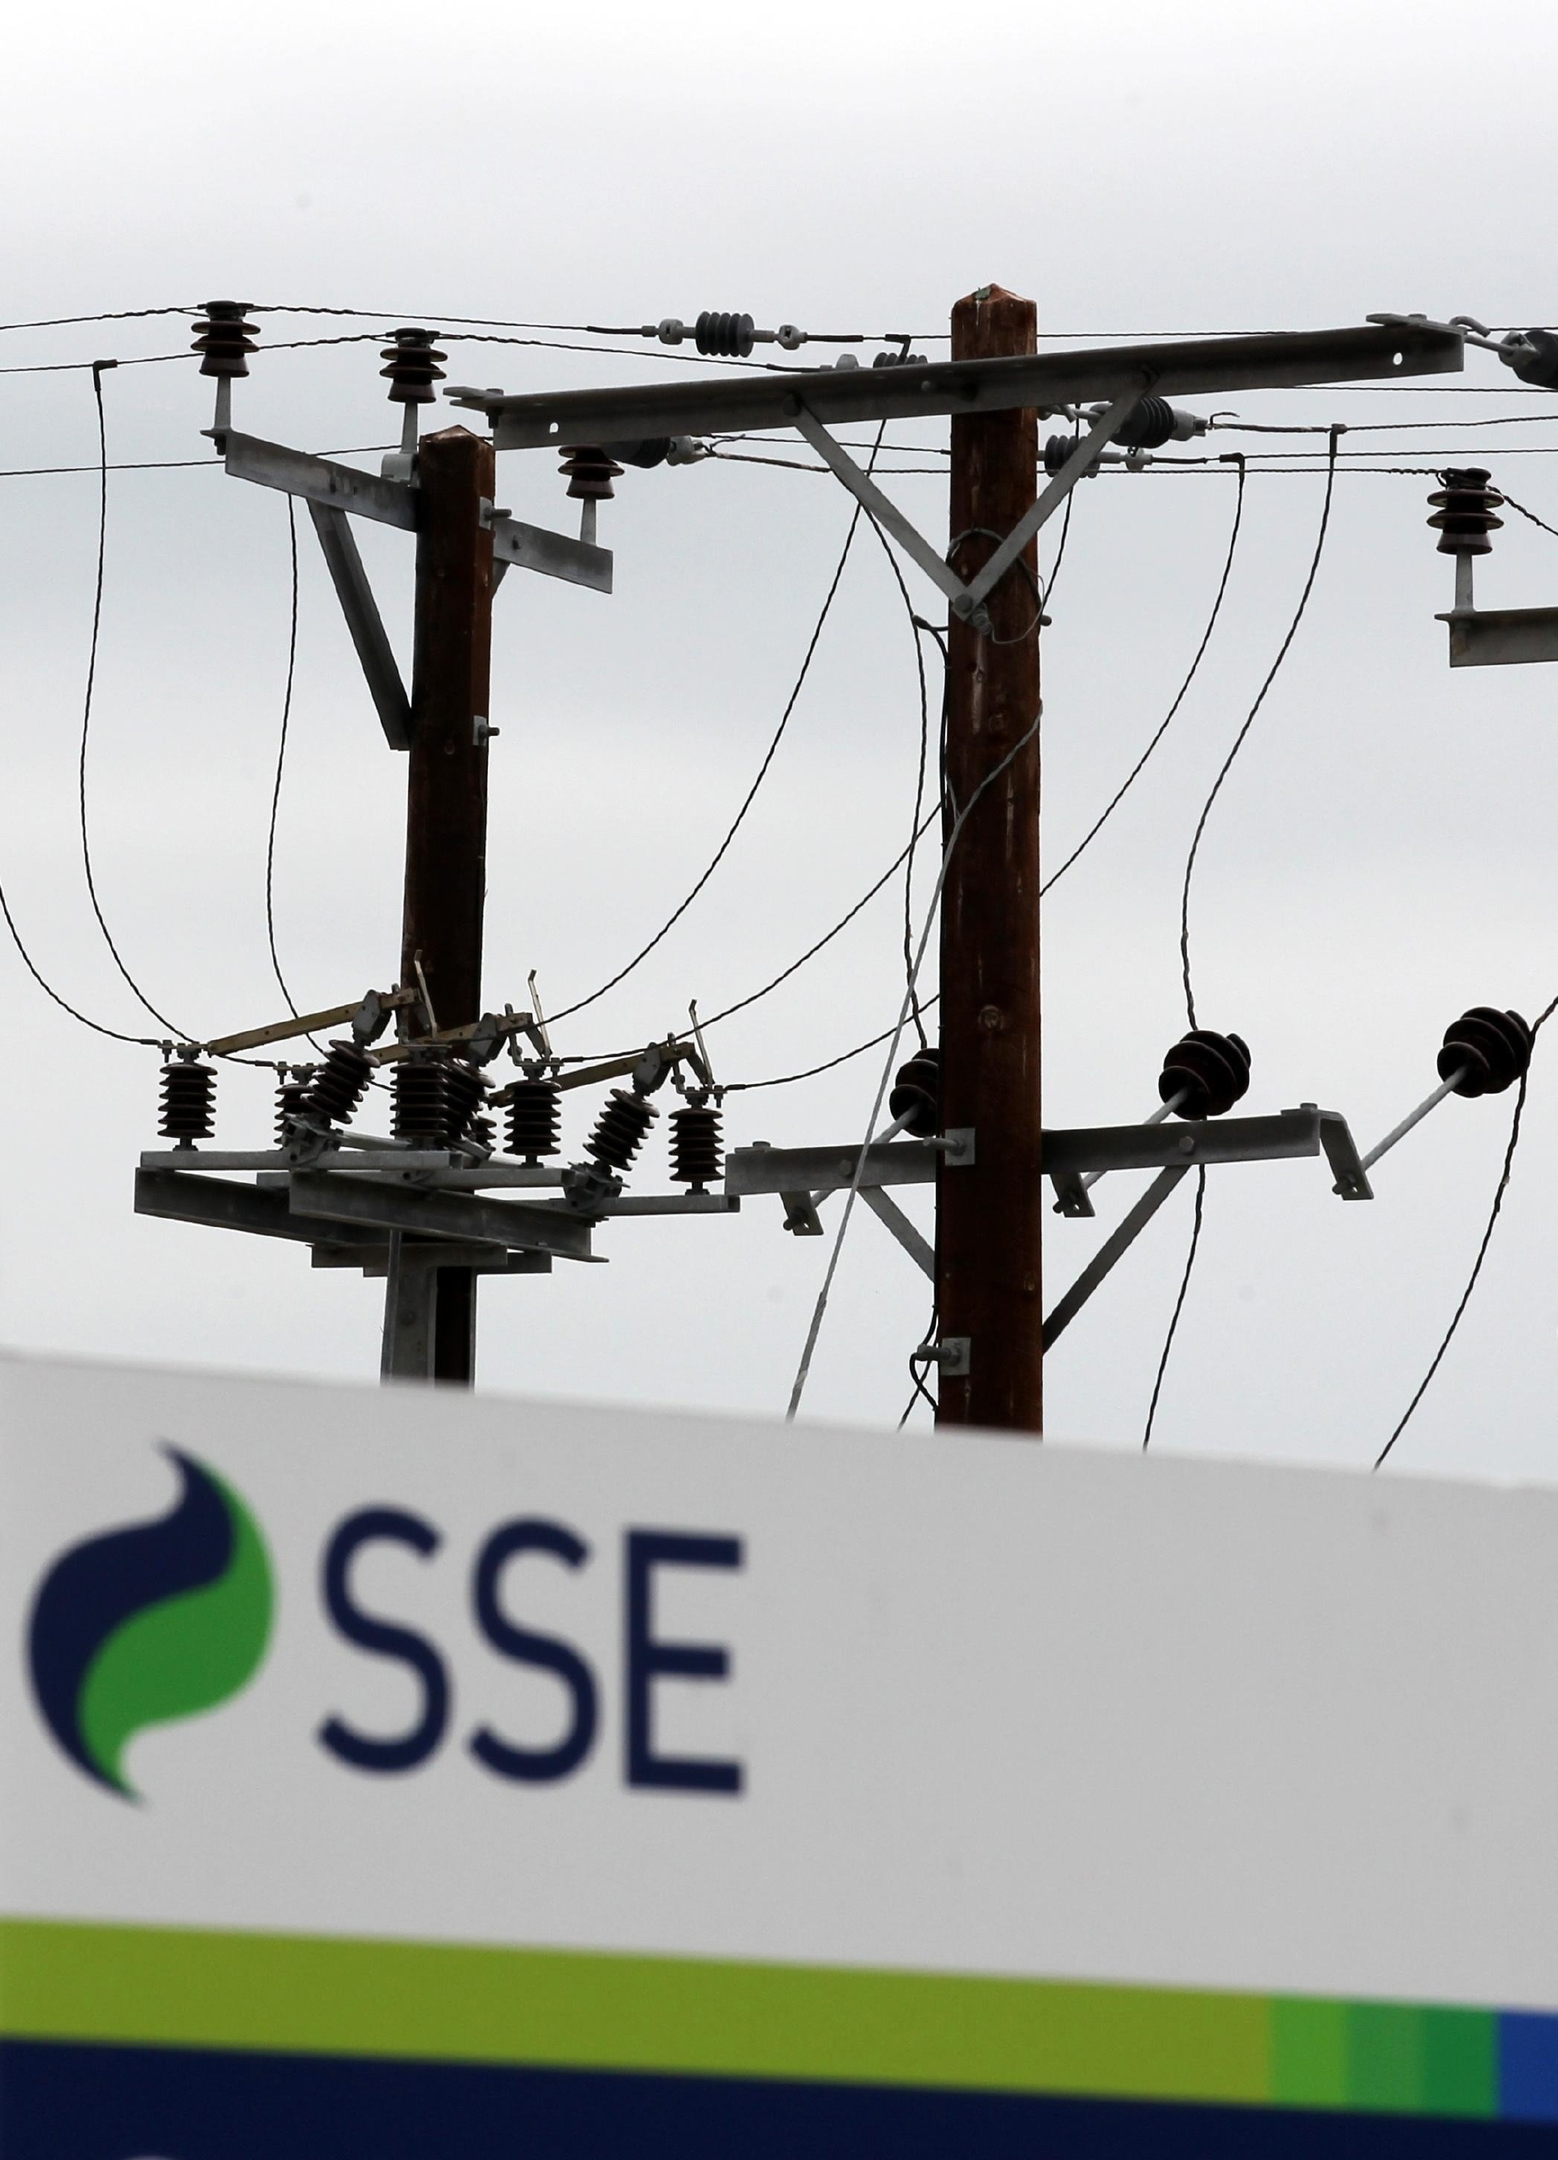 SSE engineers are working to get the power back on in Fintry.